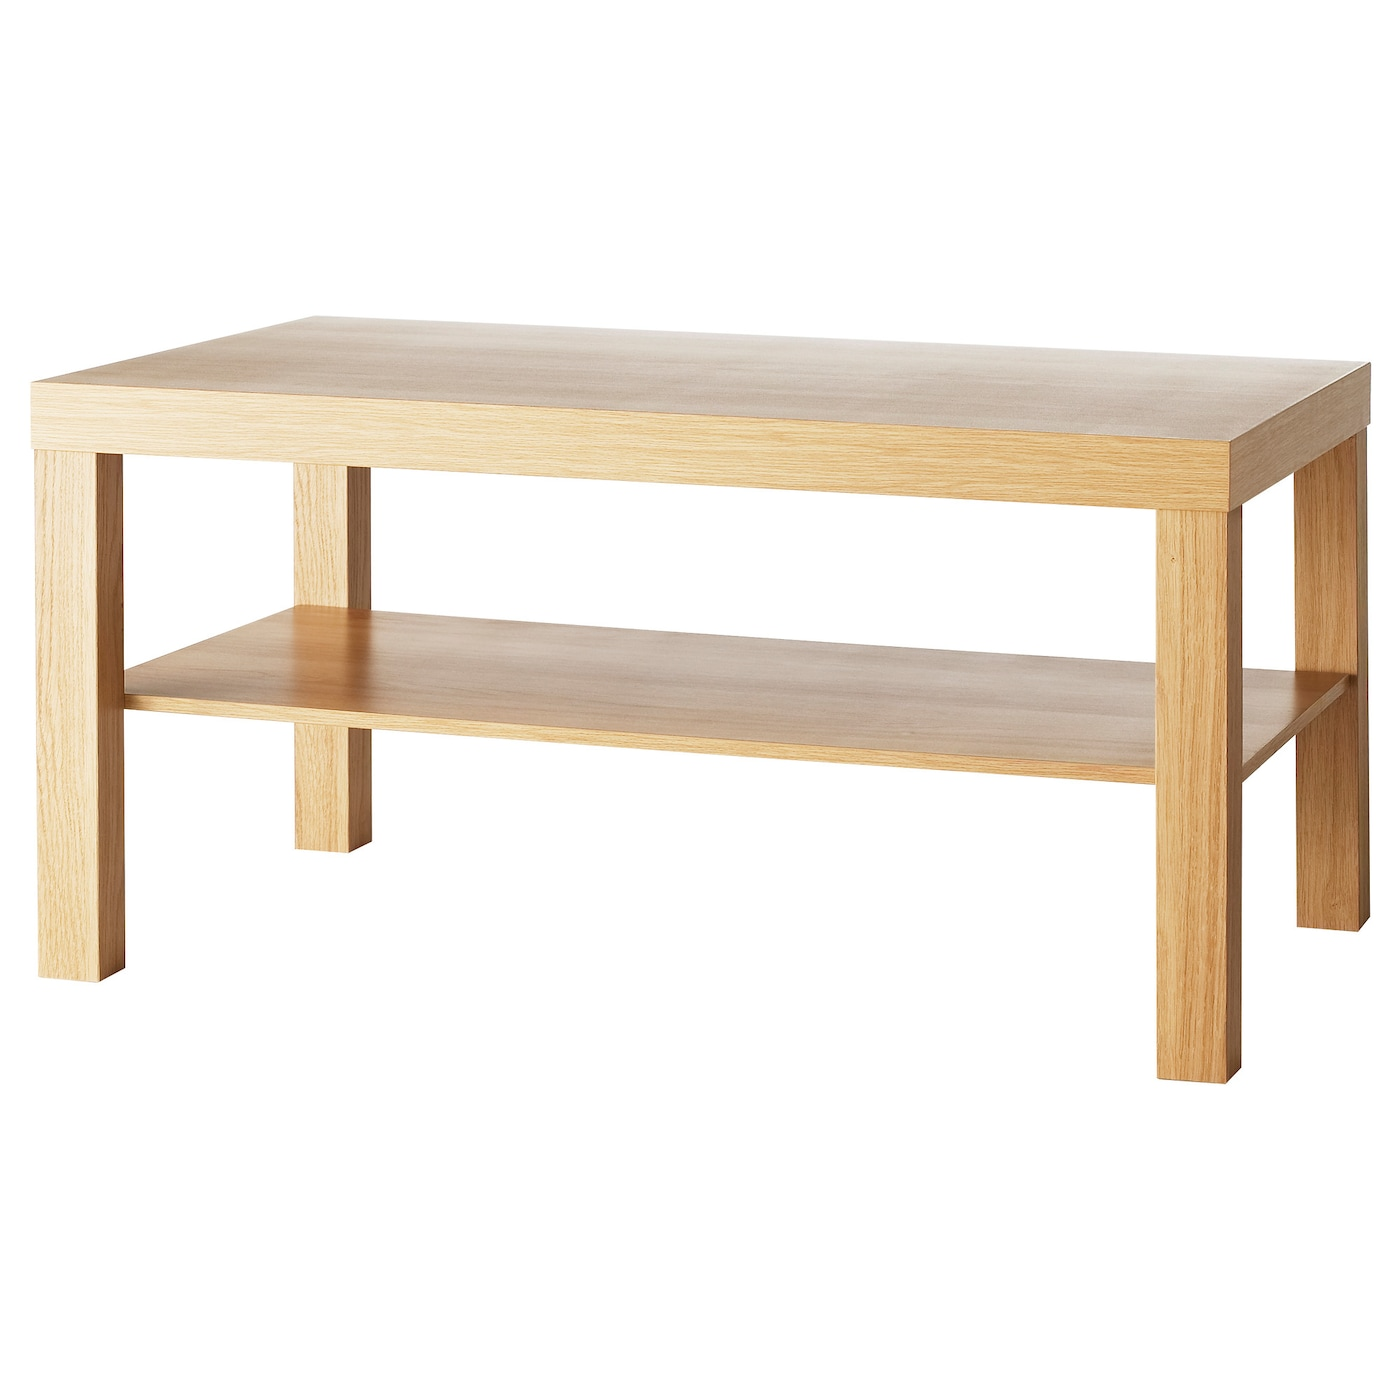 Lack coffee table oak effect 90x55 cm ikea Coffee table and side table